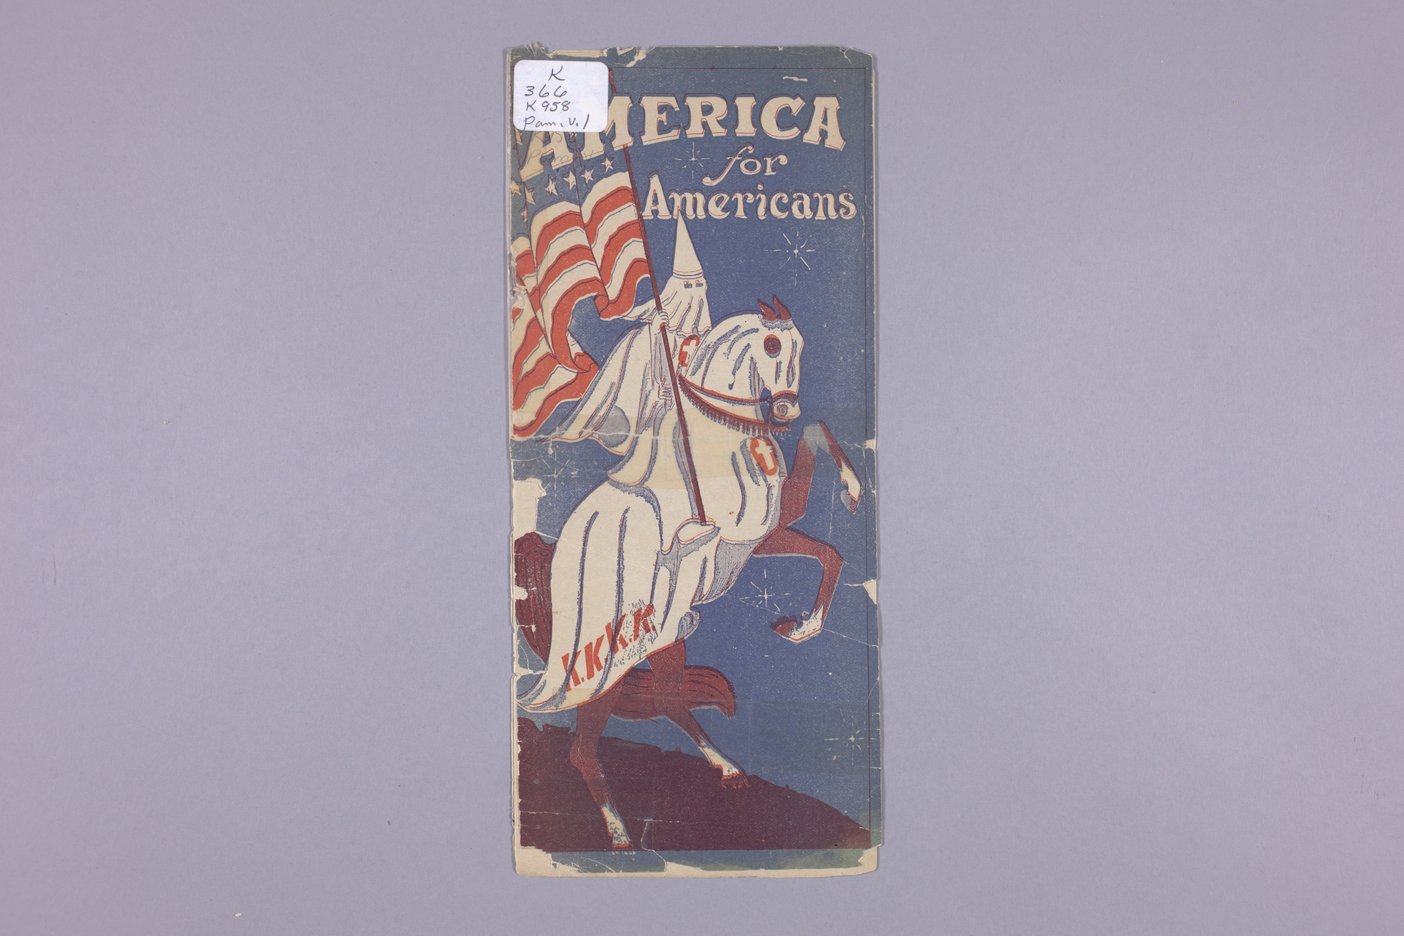 America for Americans - 1